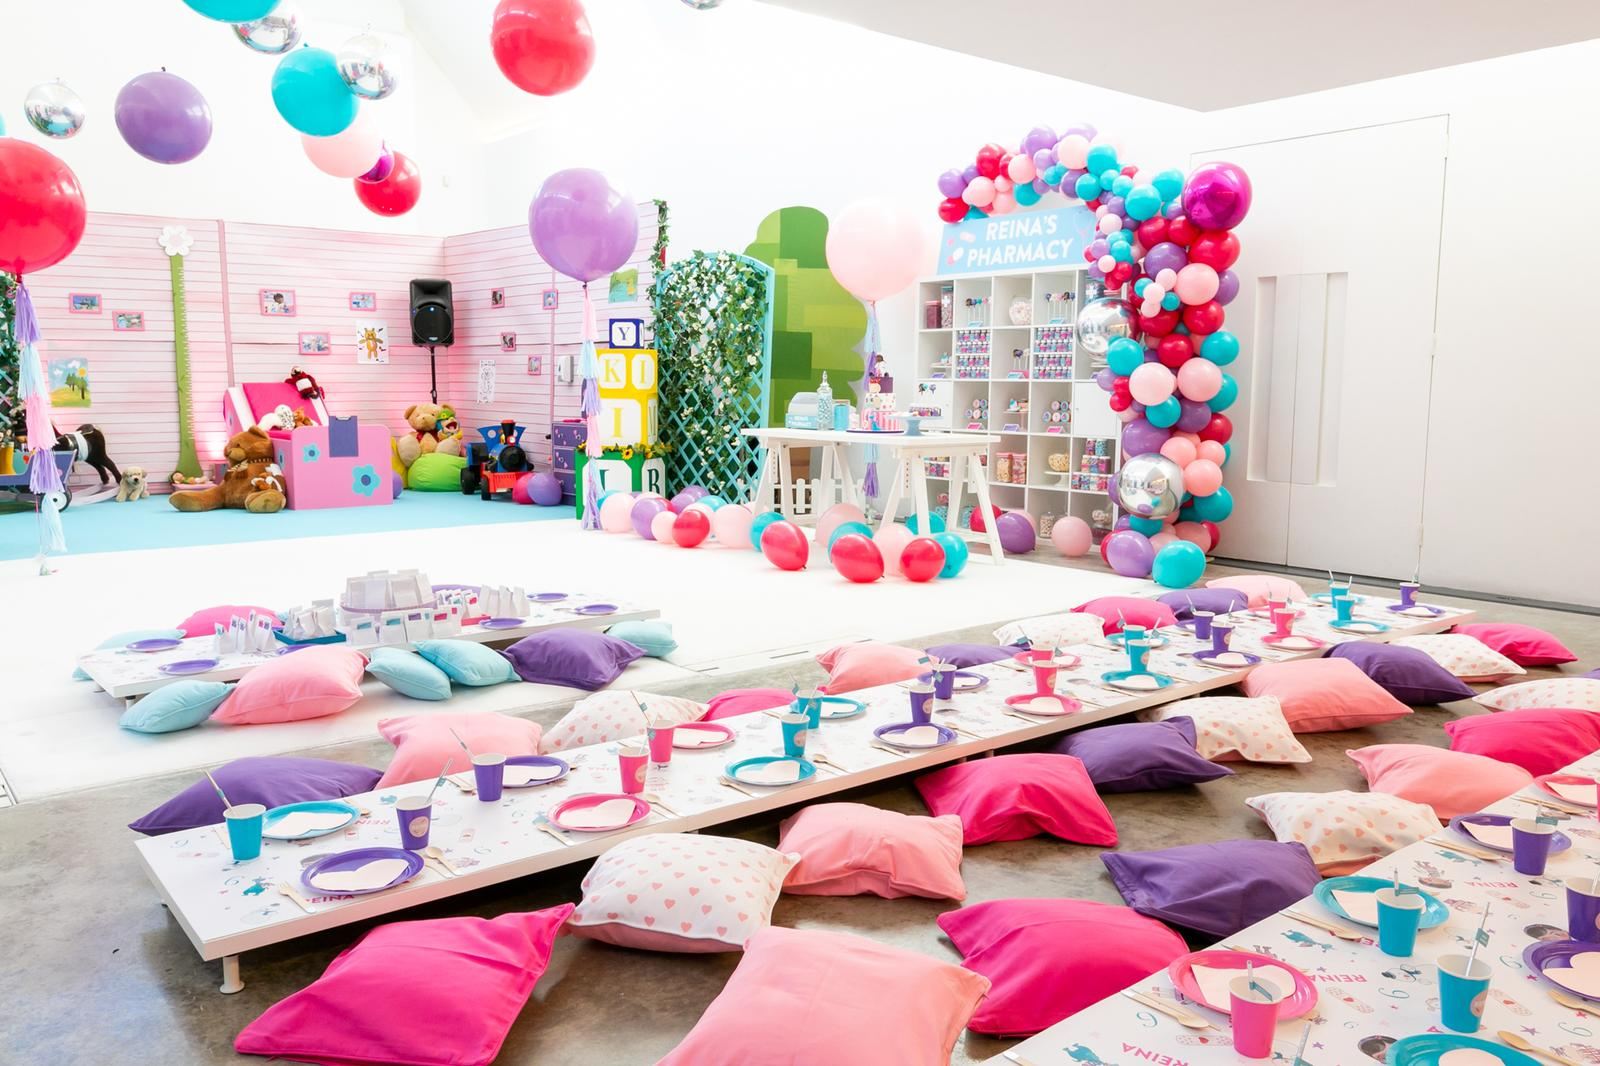 Dazzle and Fizz was founded in 2010 by childrens party planners, Charlotte Morris and Christie Molgaard. Click to find out more.